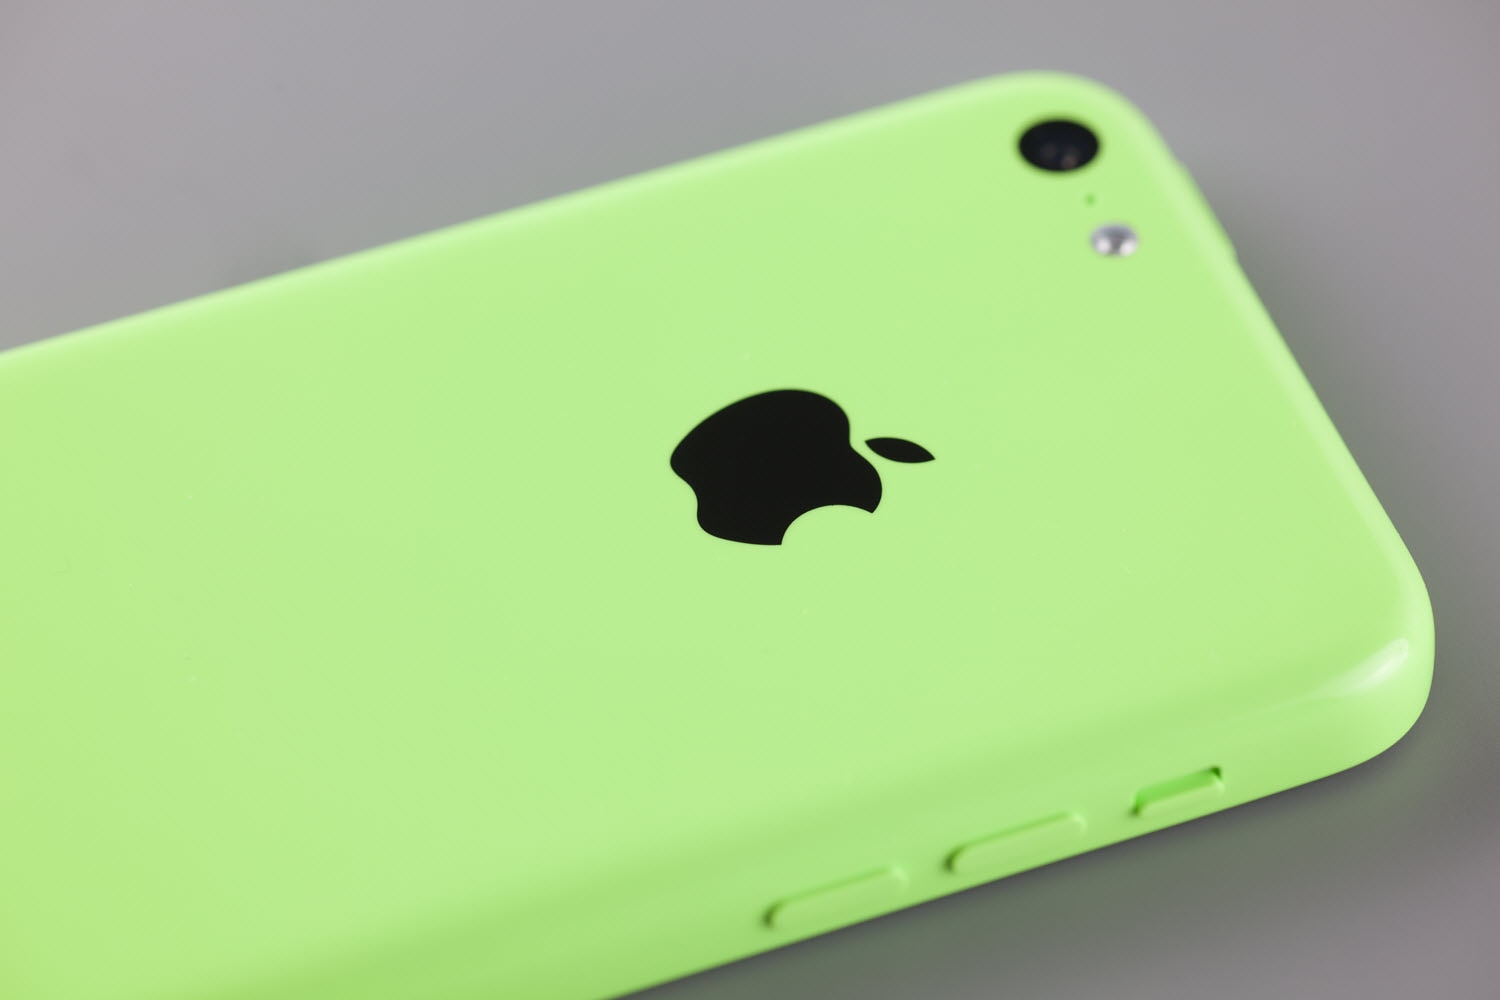 The iPhone 5c use lightweight plastic casing